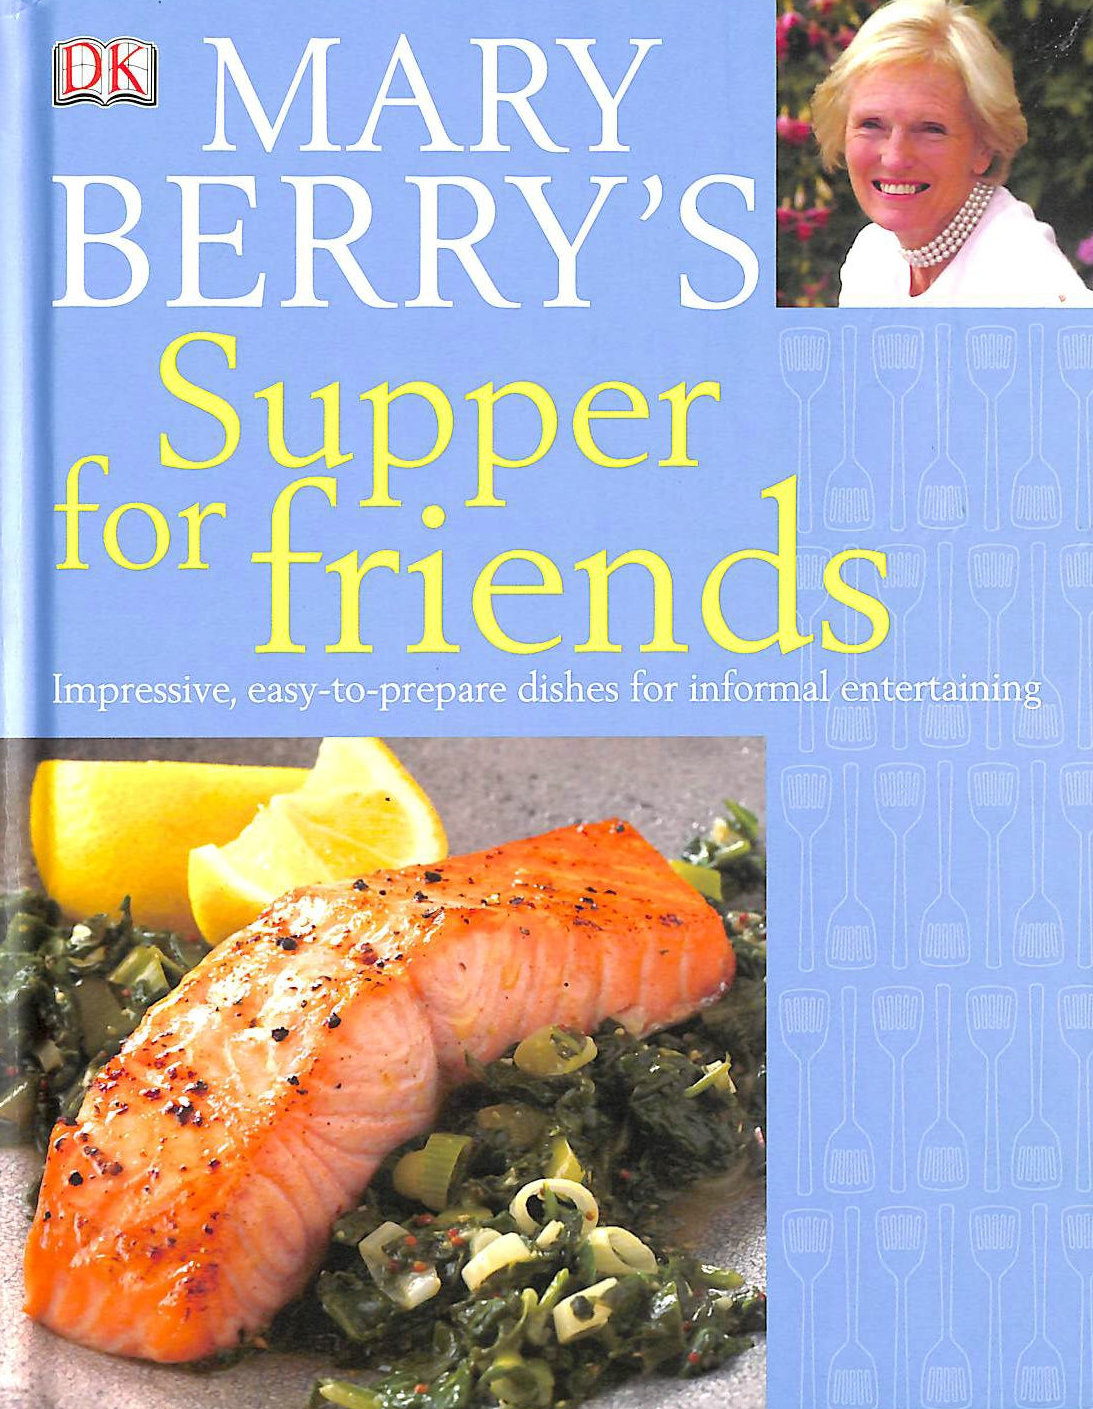 Image for Mary Berry's Supper for Friends